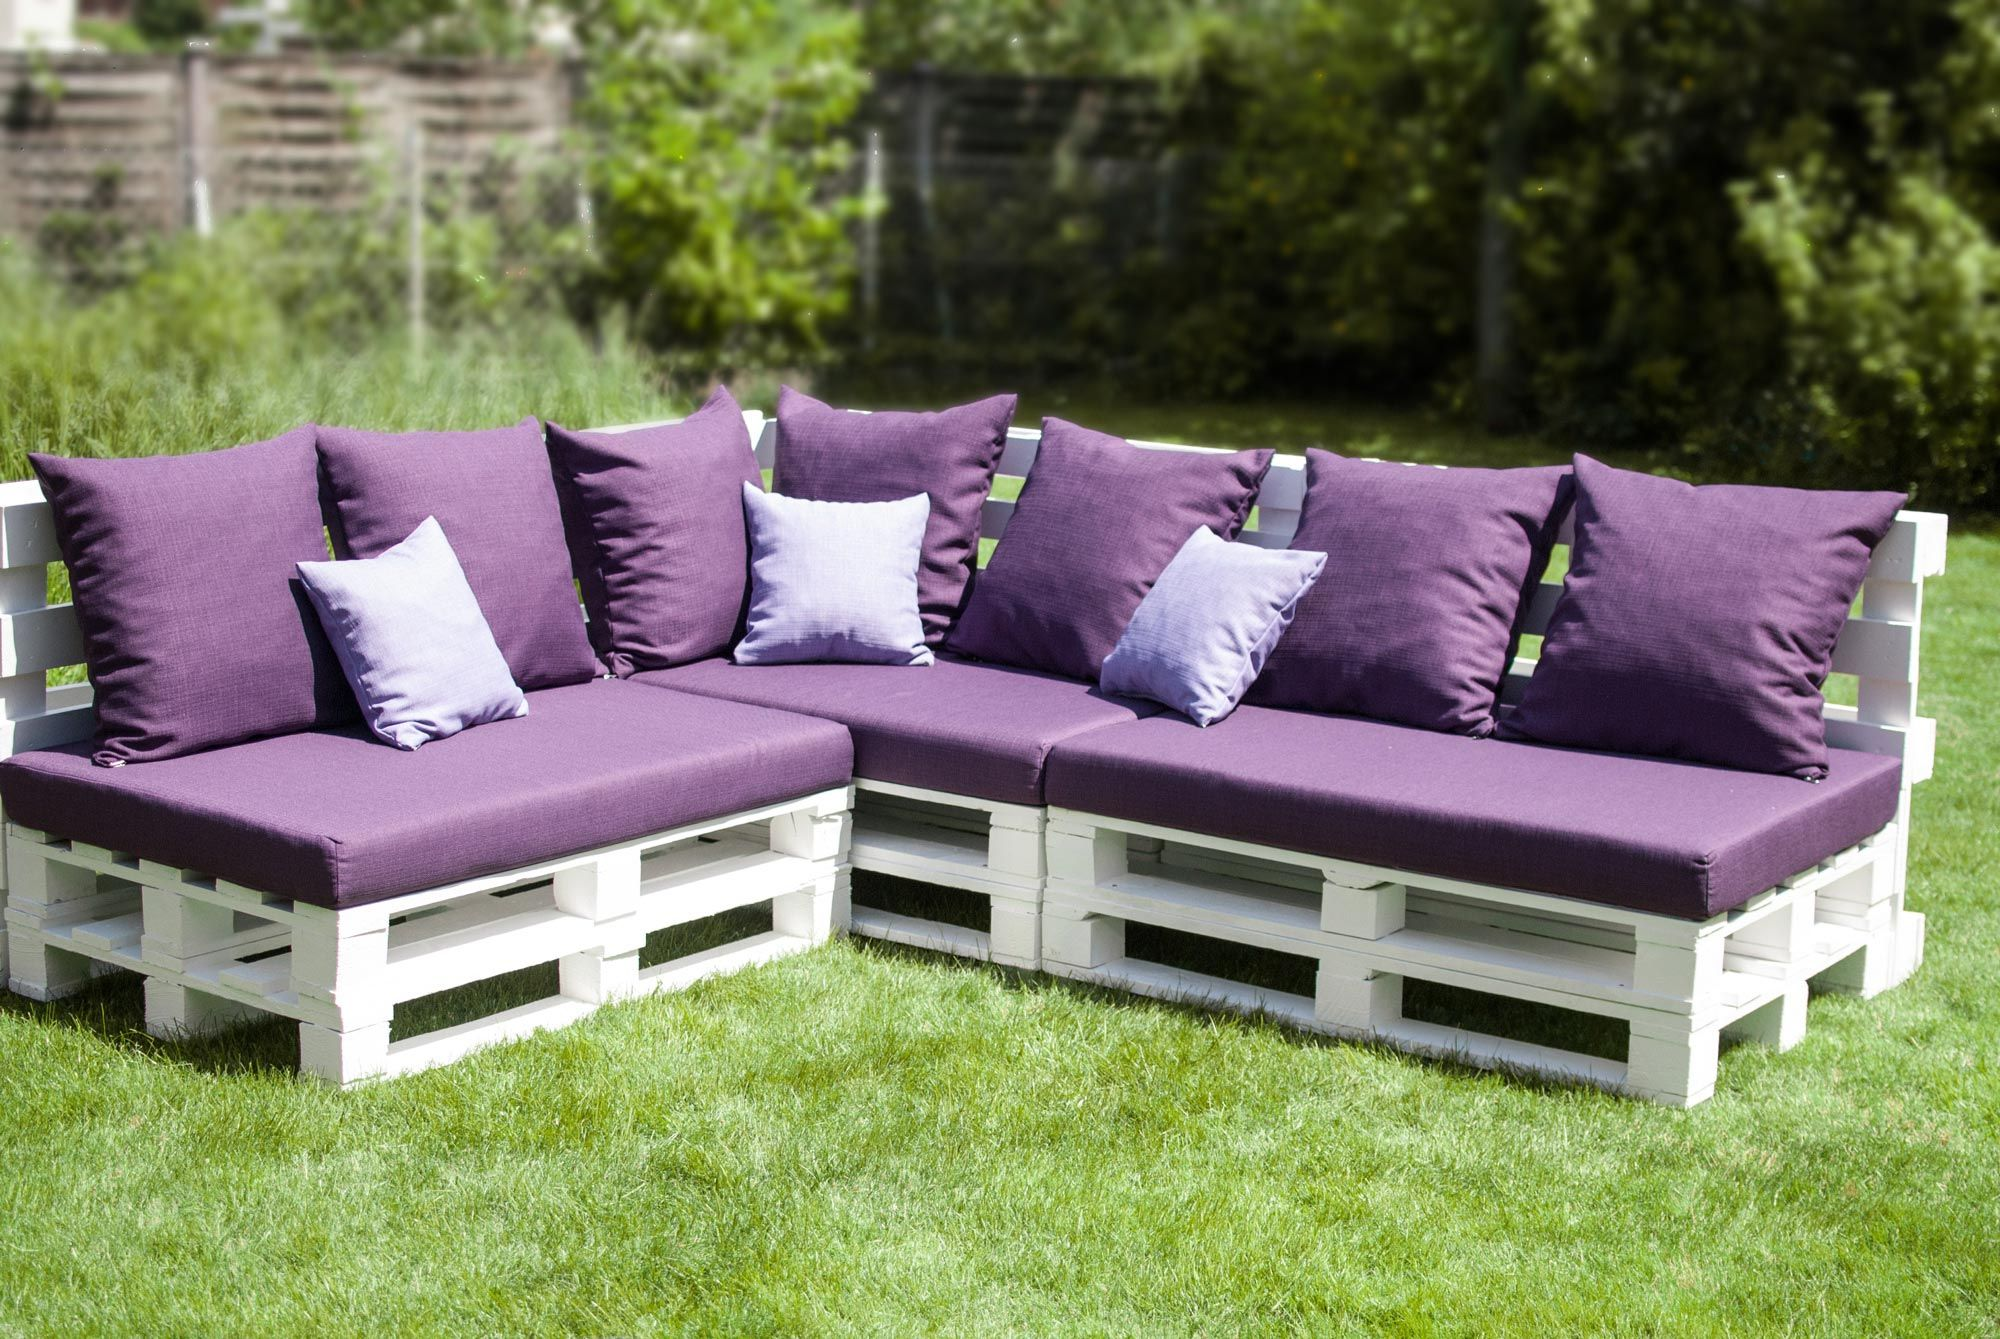 DIY outdoor couch | DIY - Ideas | Pinterest | Mobilier de Salon ...